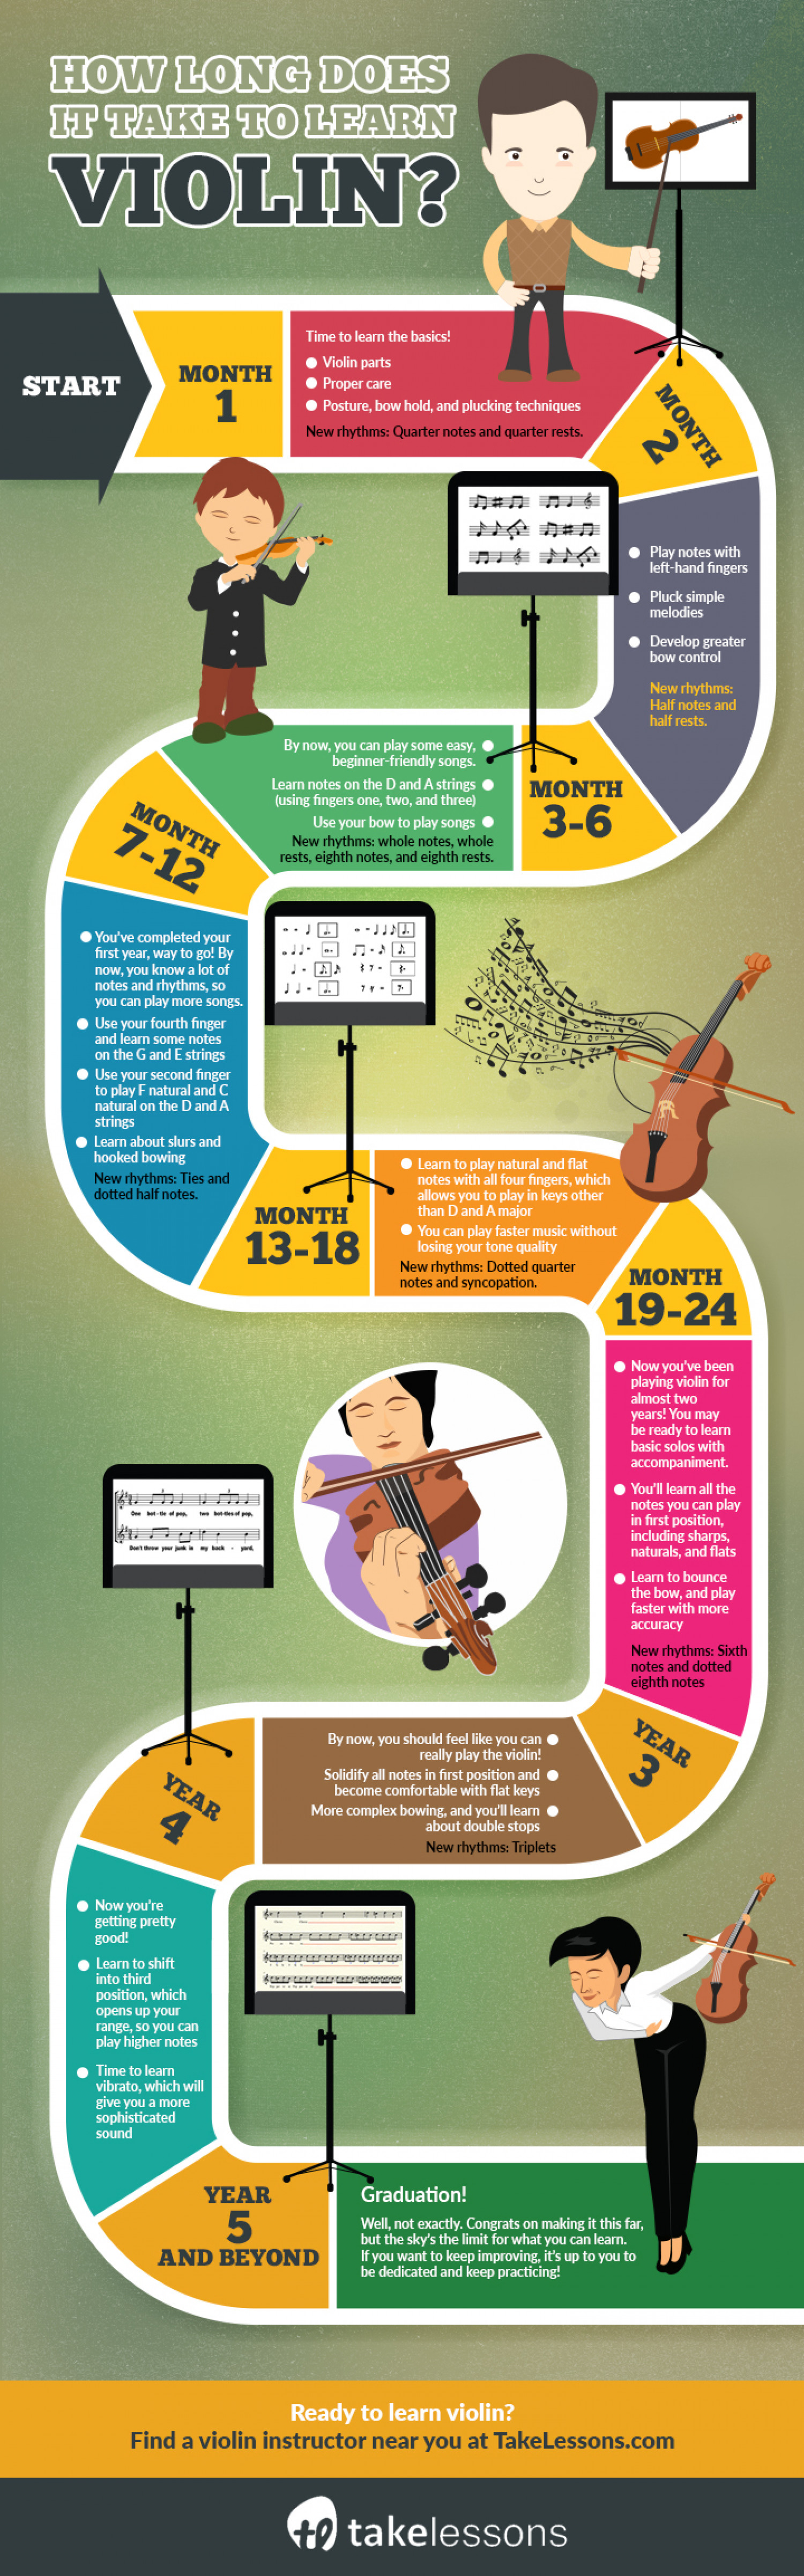 How Long Does it Take to Learn Violin? Infographic